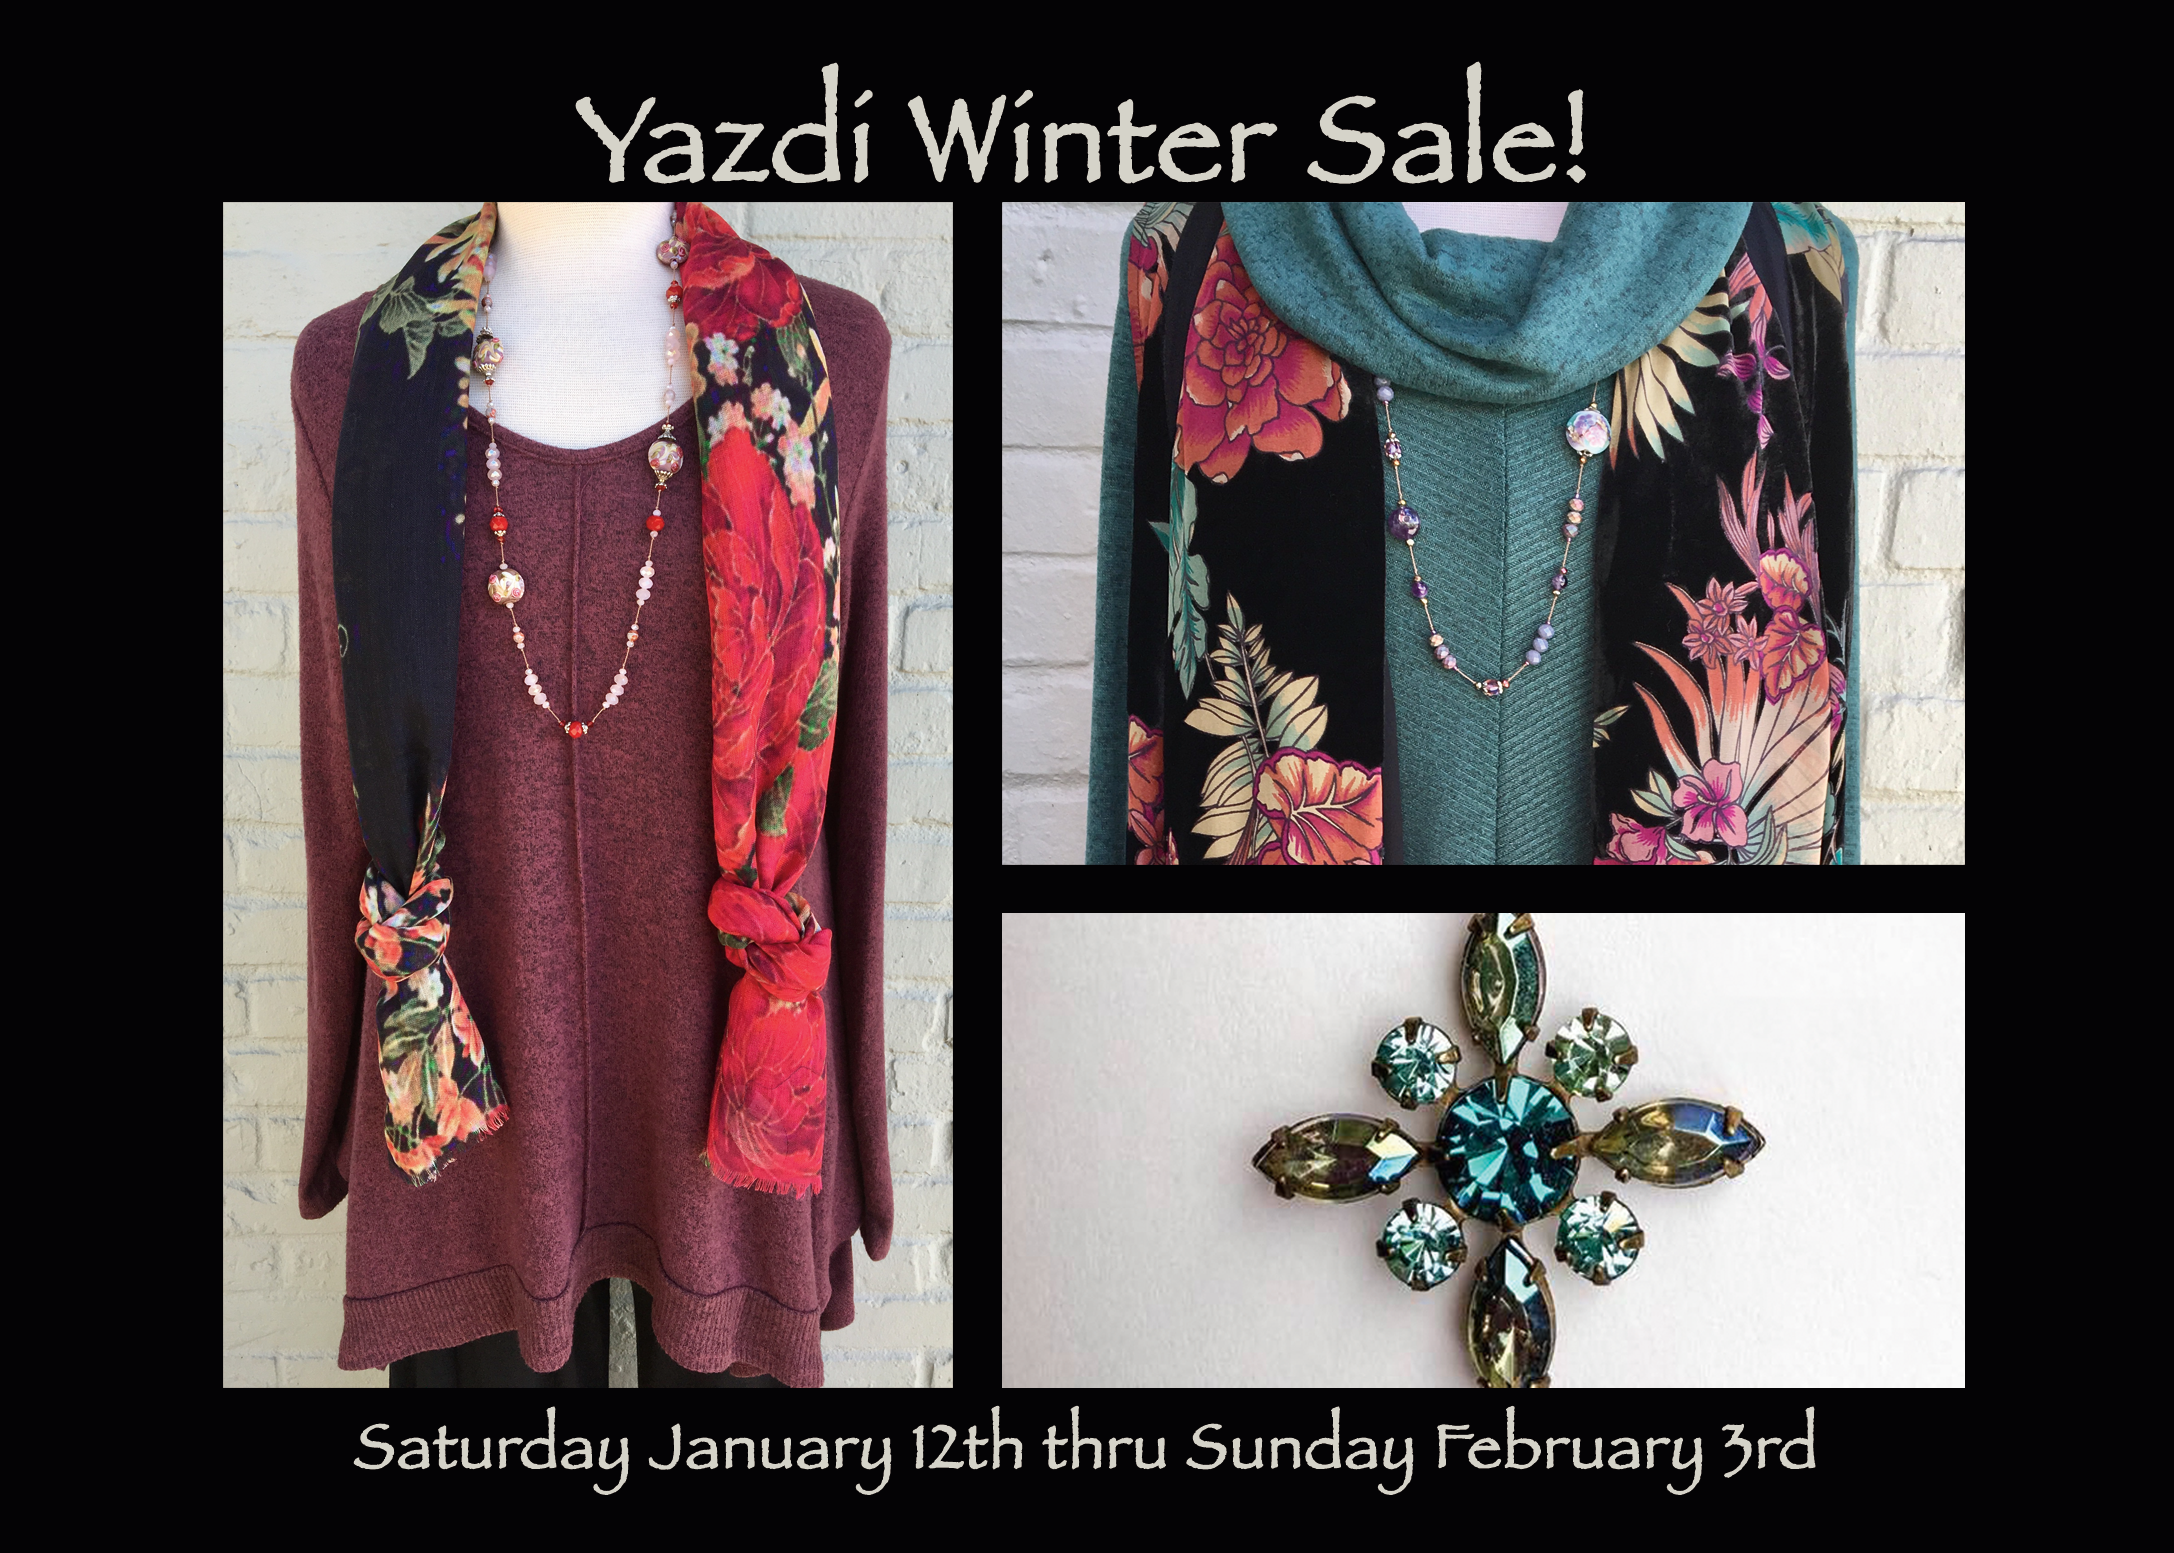 Our Annual Winter Sale starts this Saturday!